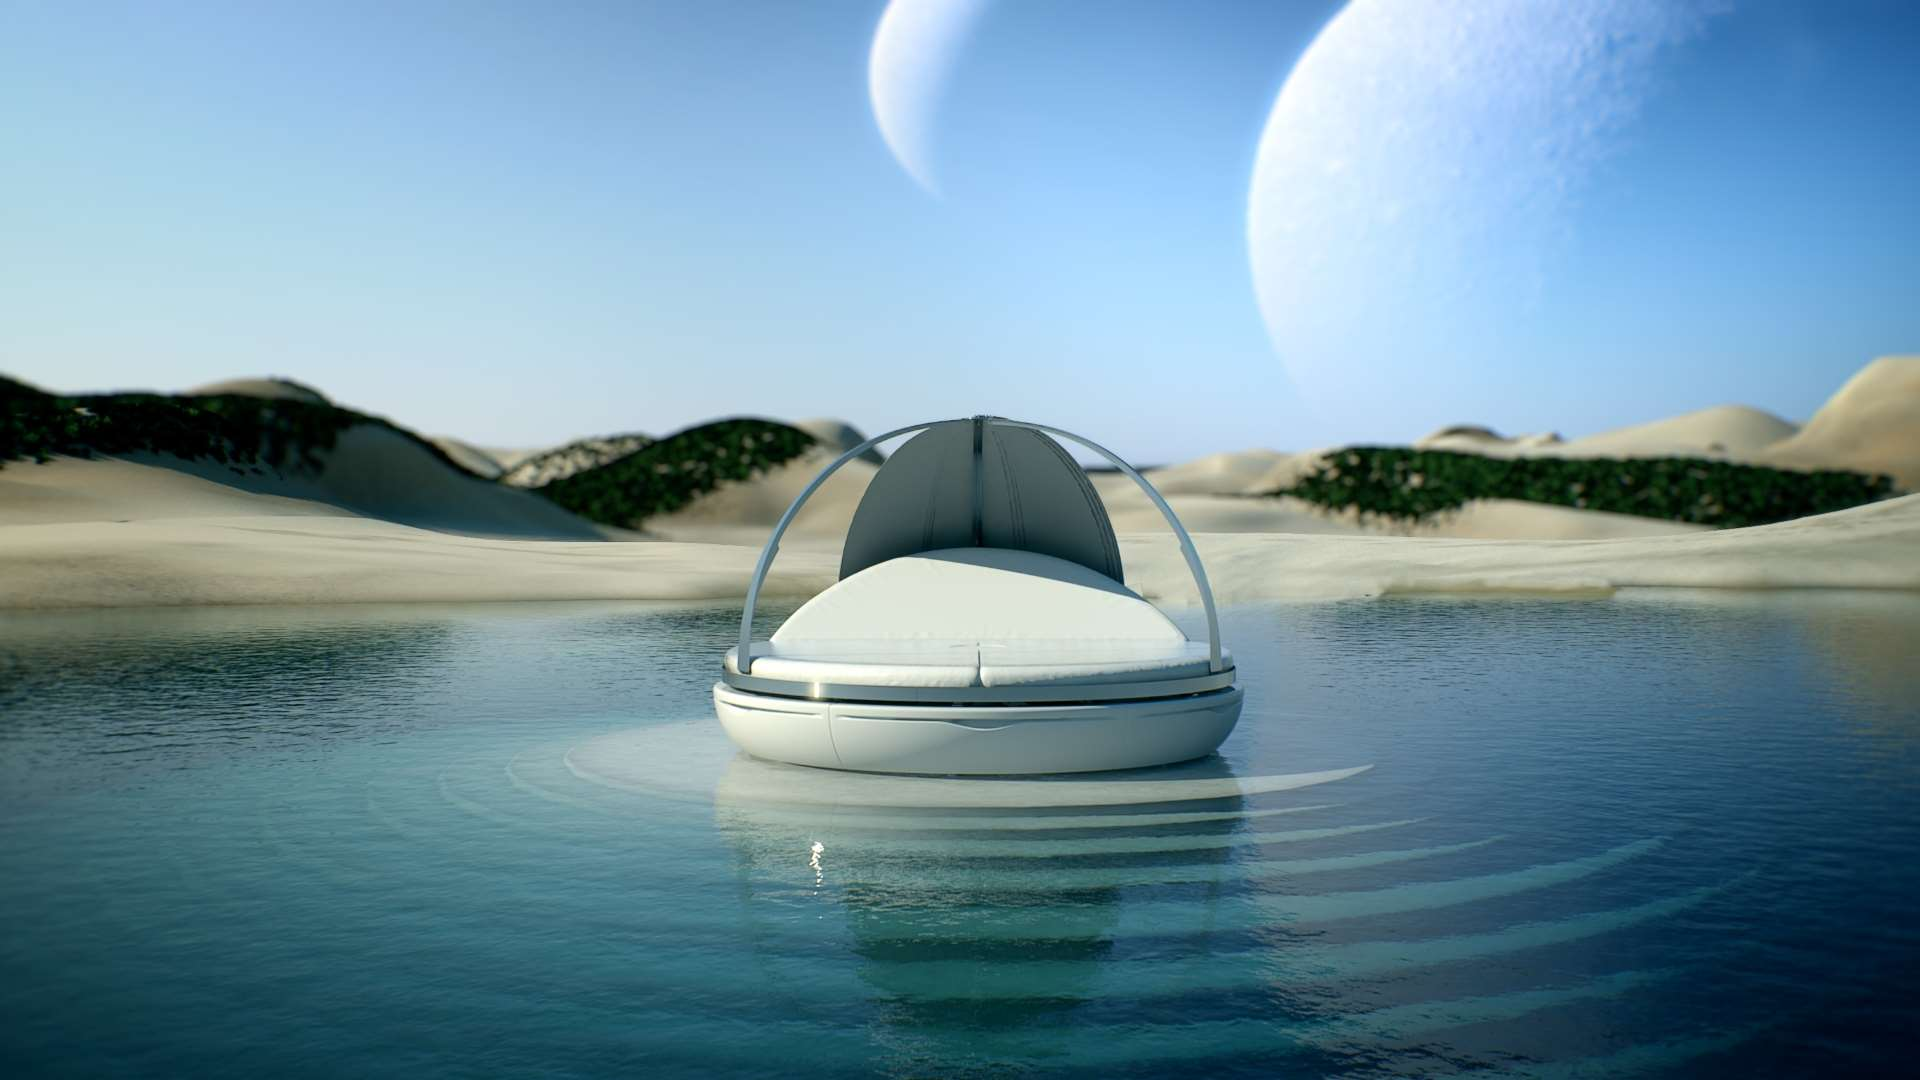 daybed by Fanstudio a daybed floating on a body of water